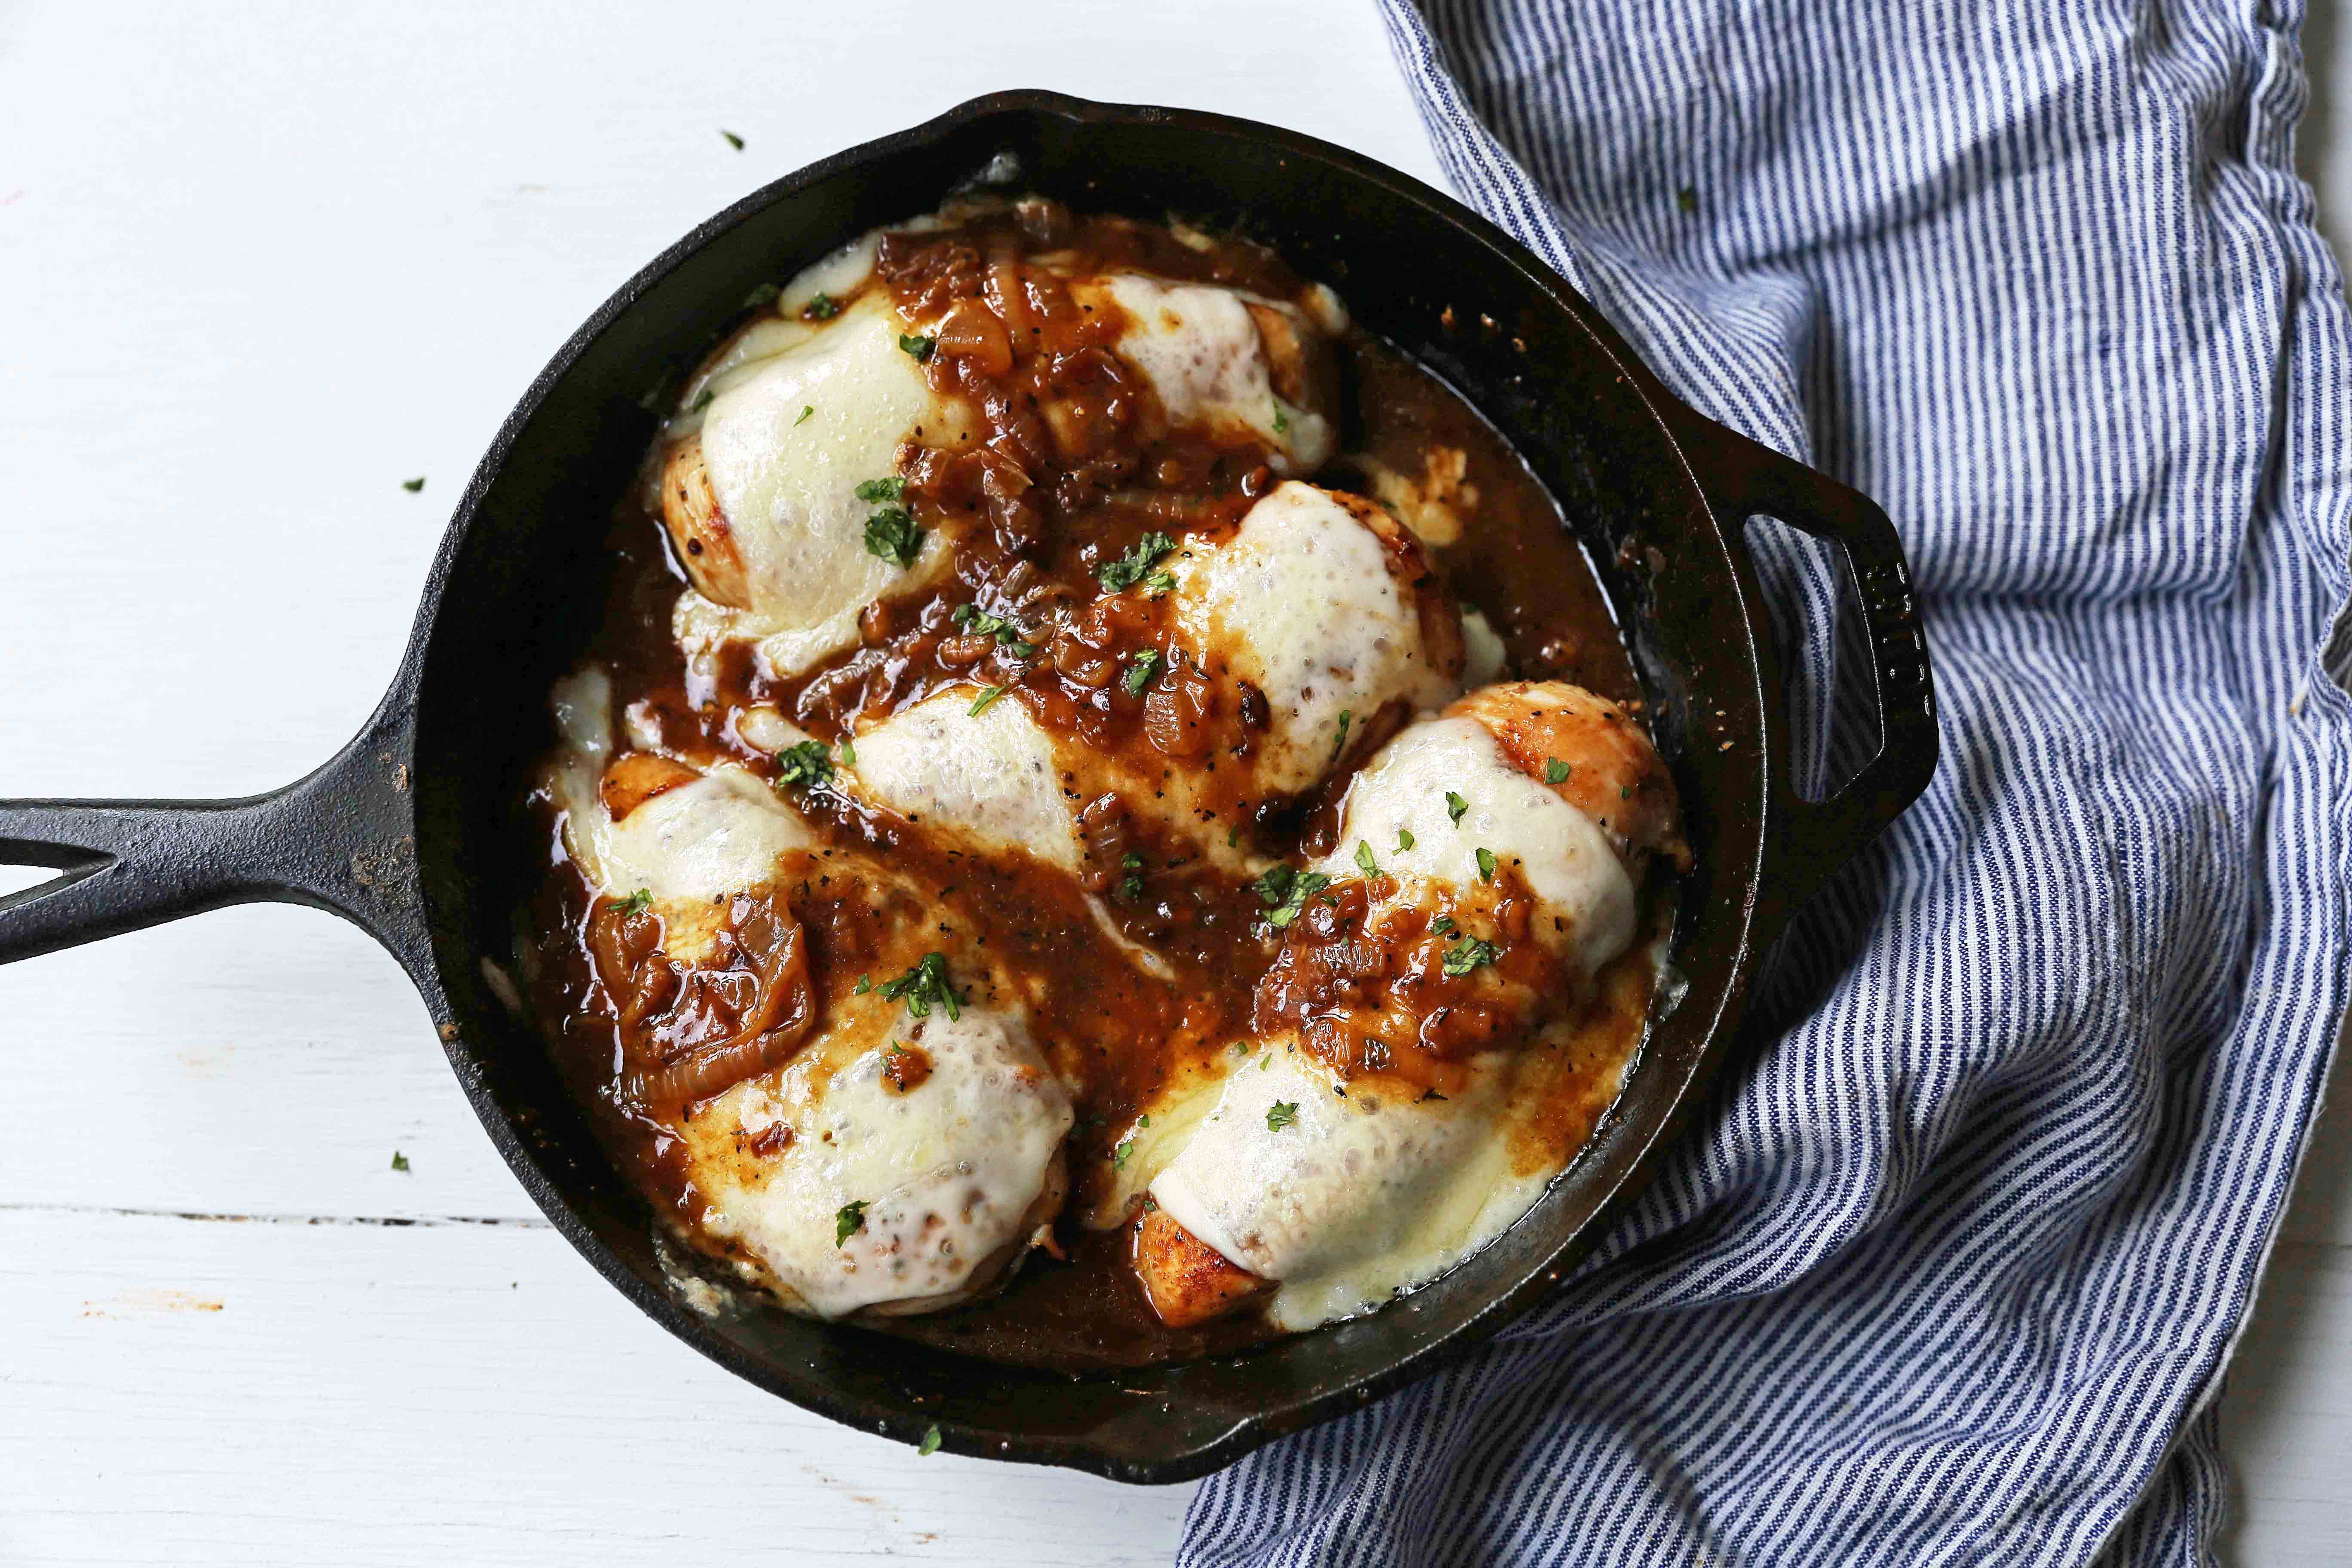 French Onion Chicken Skillet Chicken with Buttery Caramelized Onion Gravy and Melted Cheeses. A simple, flavorful, 30-minute meal! www.modernhoney.com #30minutemeal #dinnerrecipe #frenchonionchicken #cheesychicken #chickendinner